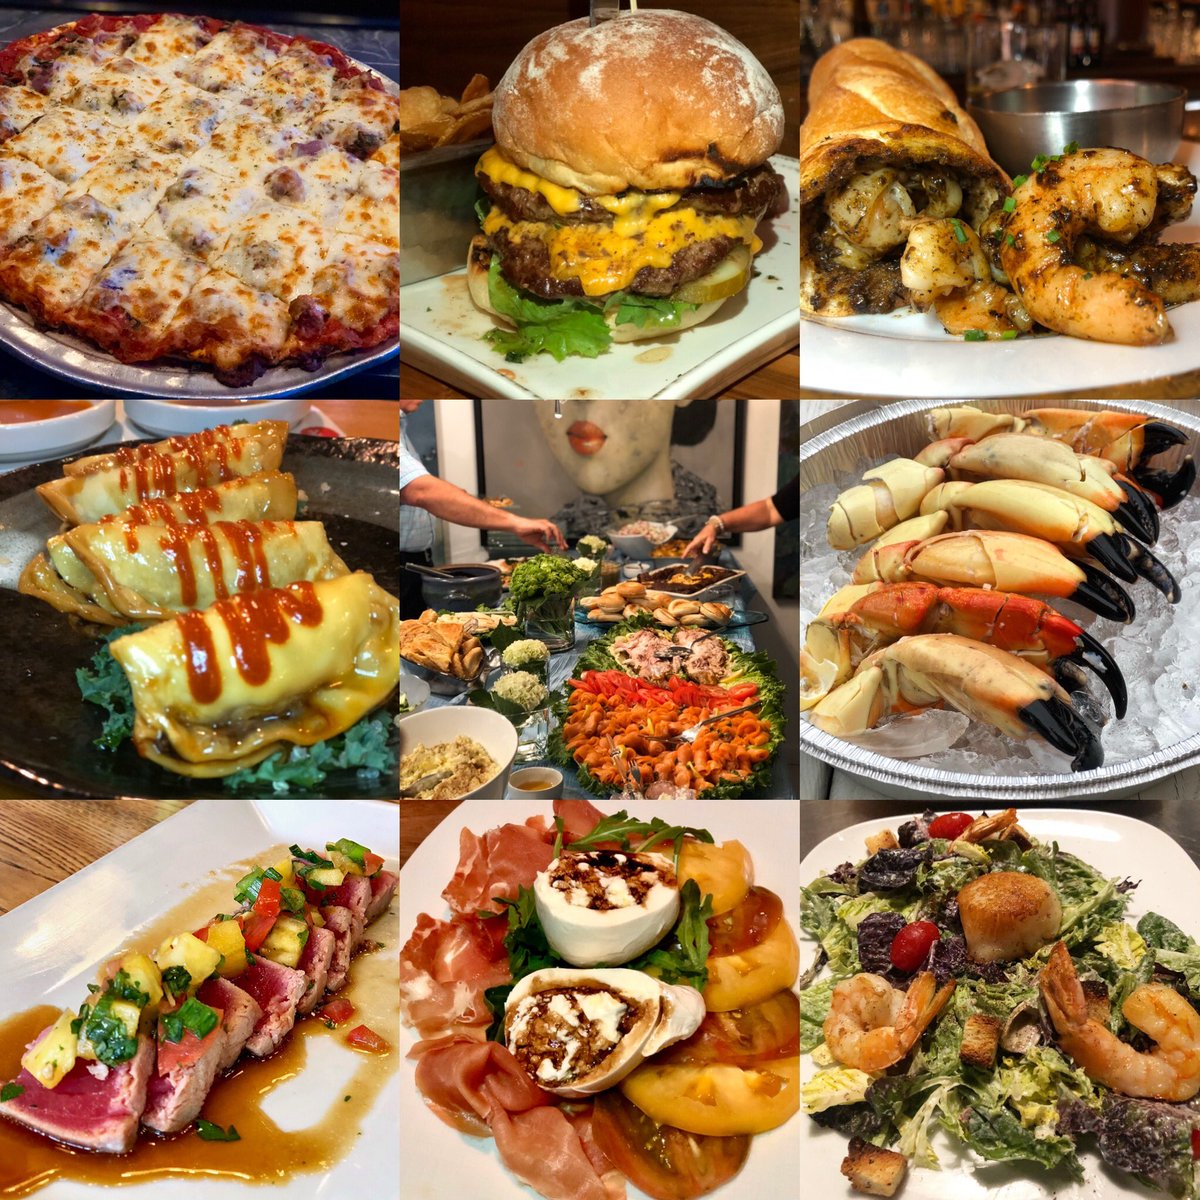 So many amazing bites and dishes this year! Here's our Top 9 bites of 2019! #Foodiechats #Foodies #Foodie #Chicago #Miami #LakeGeneva #Vancouver #LosAngeles #Philadelphia #EatThis #Pizza #Burger #Shrimp #Salmon #StoneCrab #Tuna #Burrata #Scallop #Seafood #Fruit #Vegetables